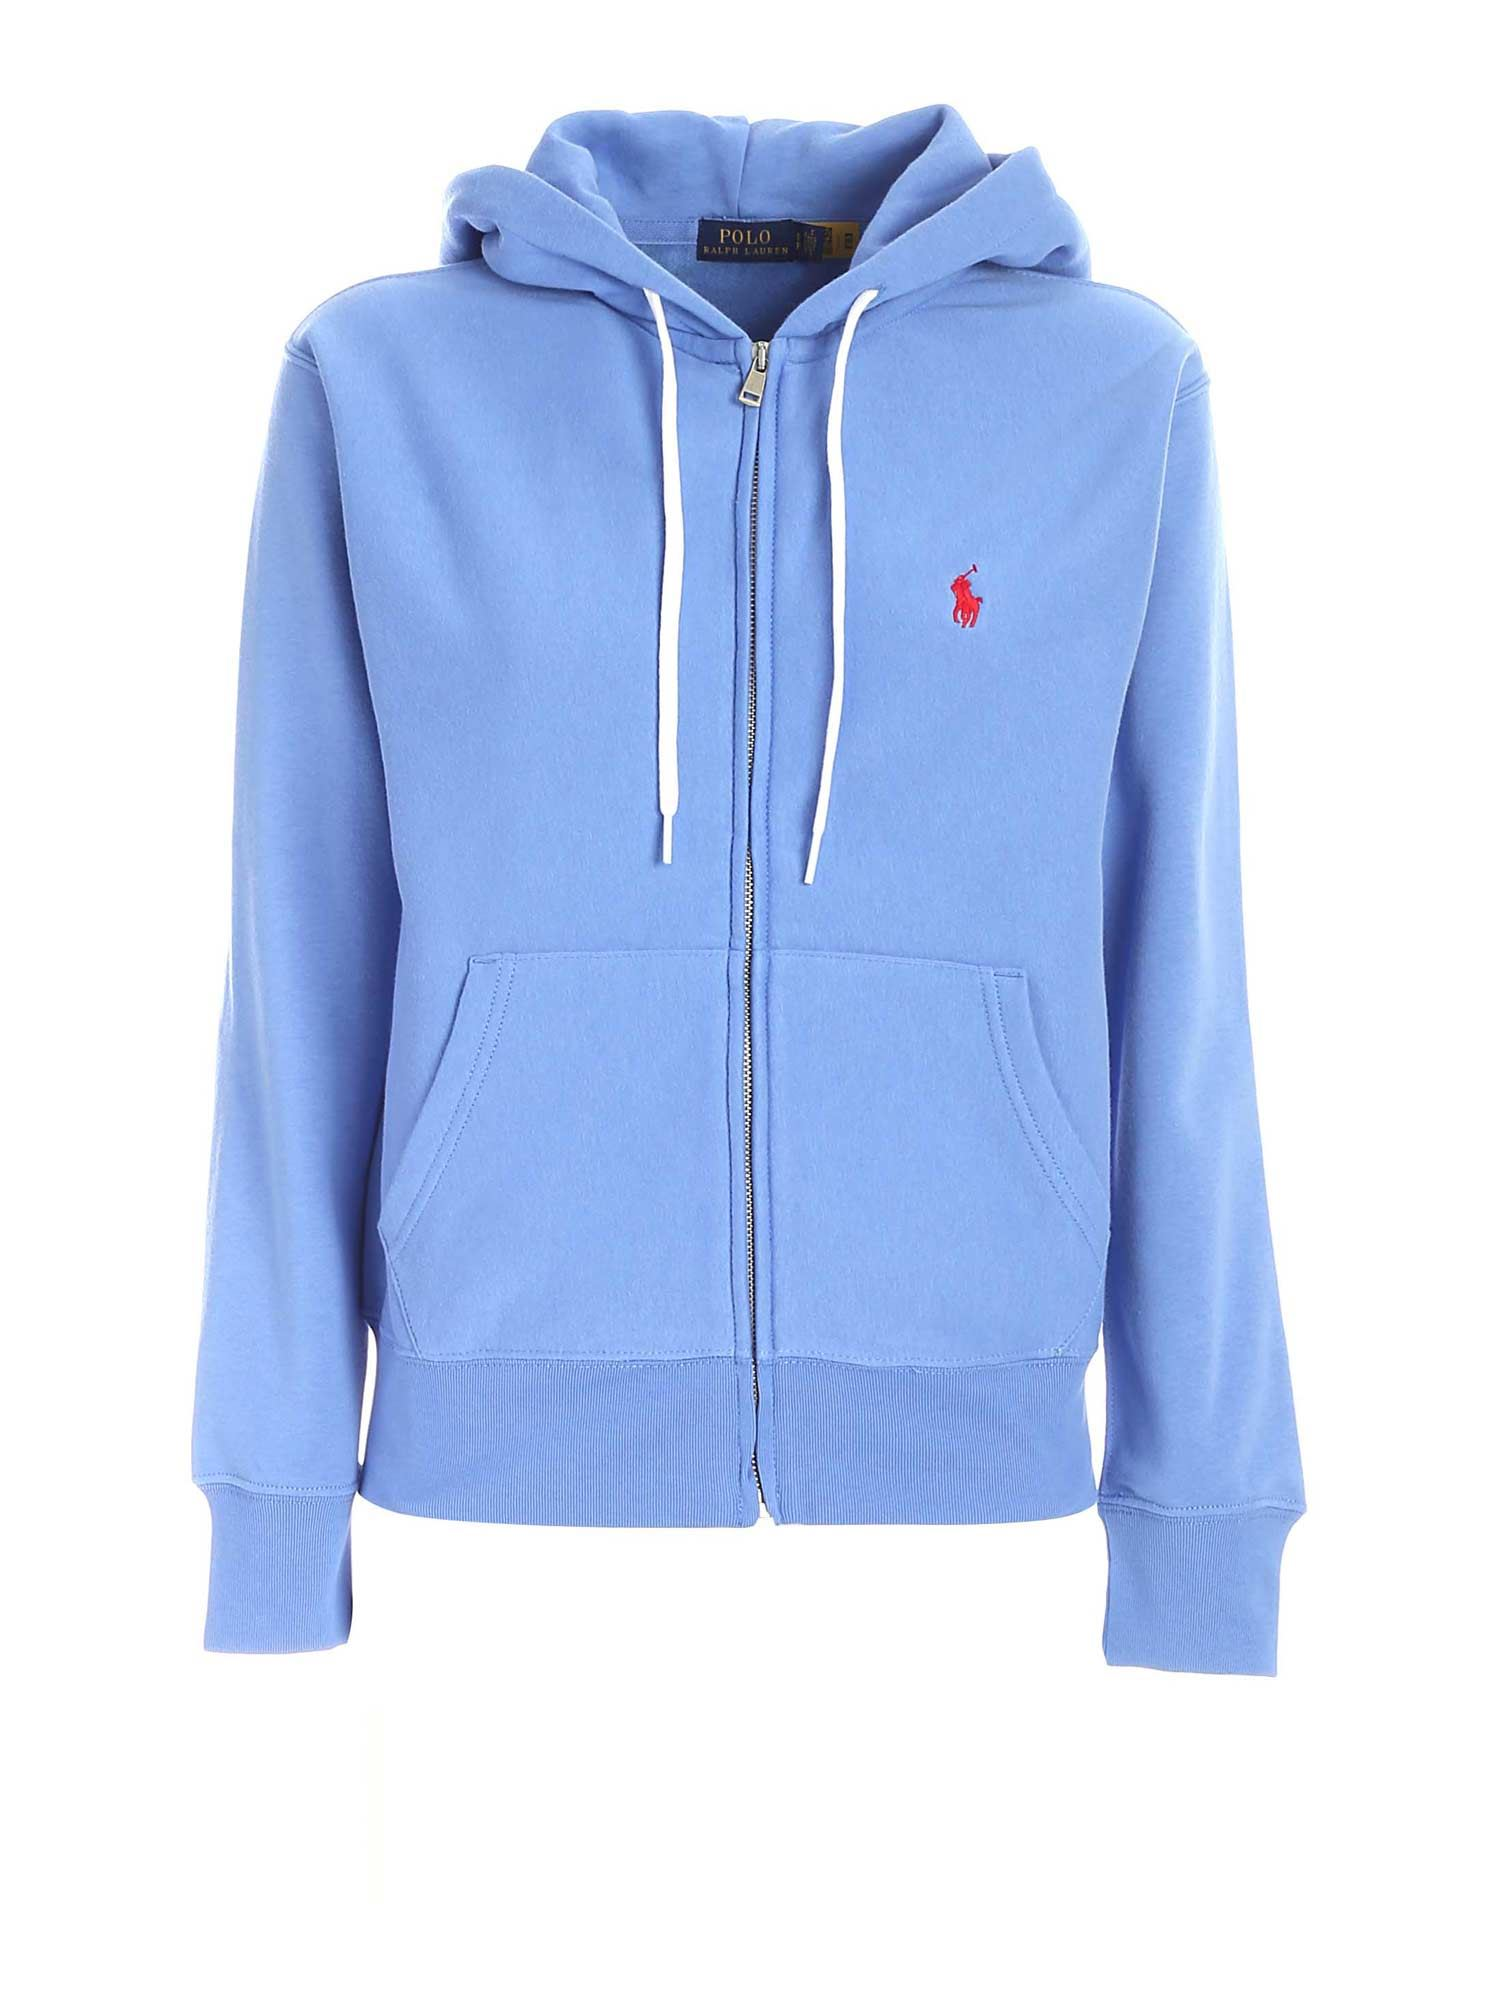 Polo Ralph Lauren POLO RALPH LAUREN LOGO EMBROIDERY SWEATSHIRT IN LIGHT BLUE